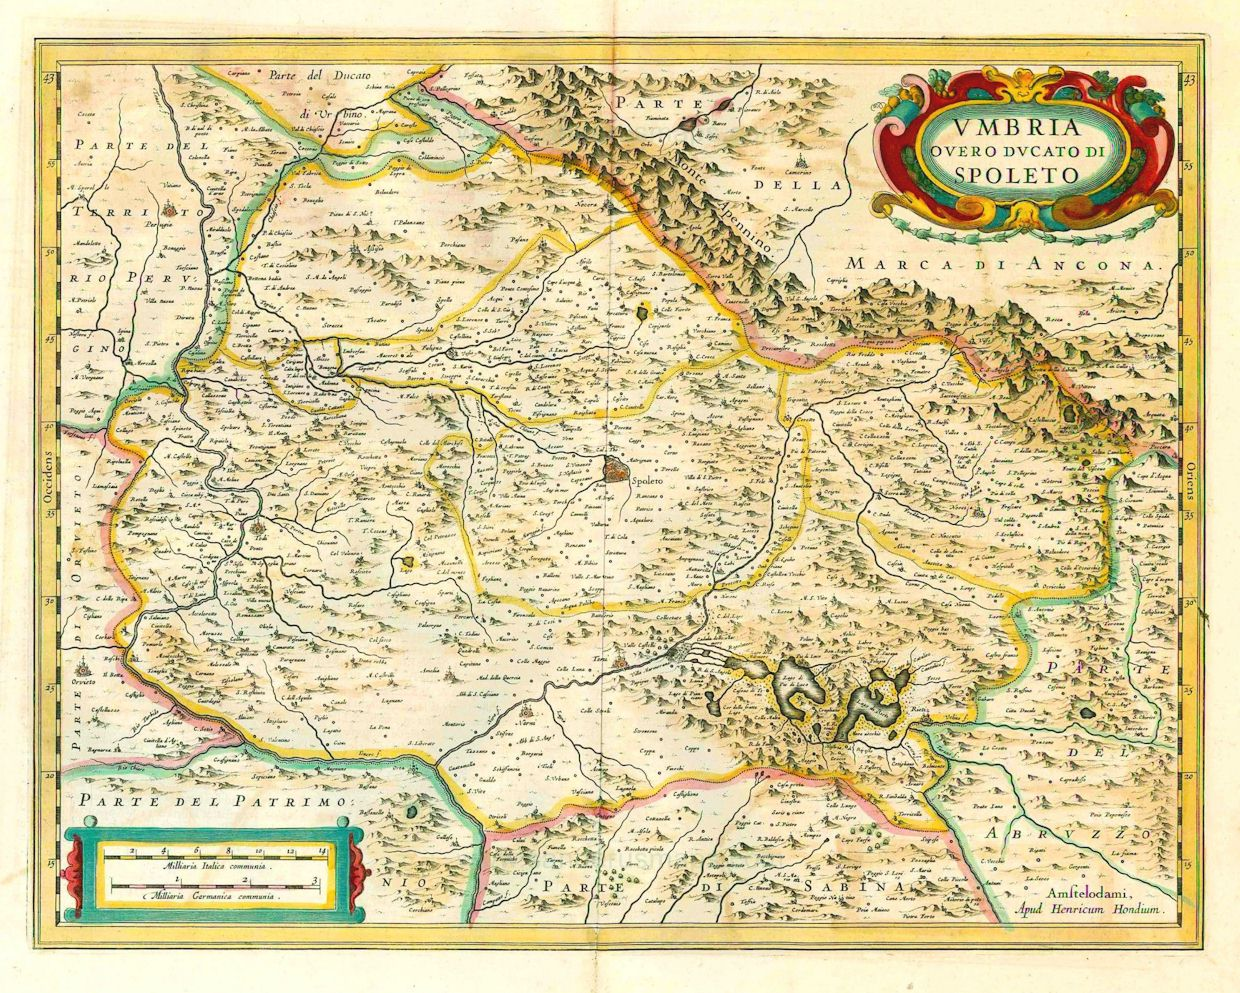 Antique map of Umbria